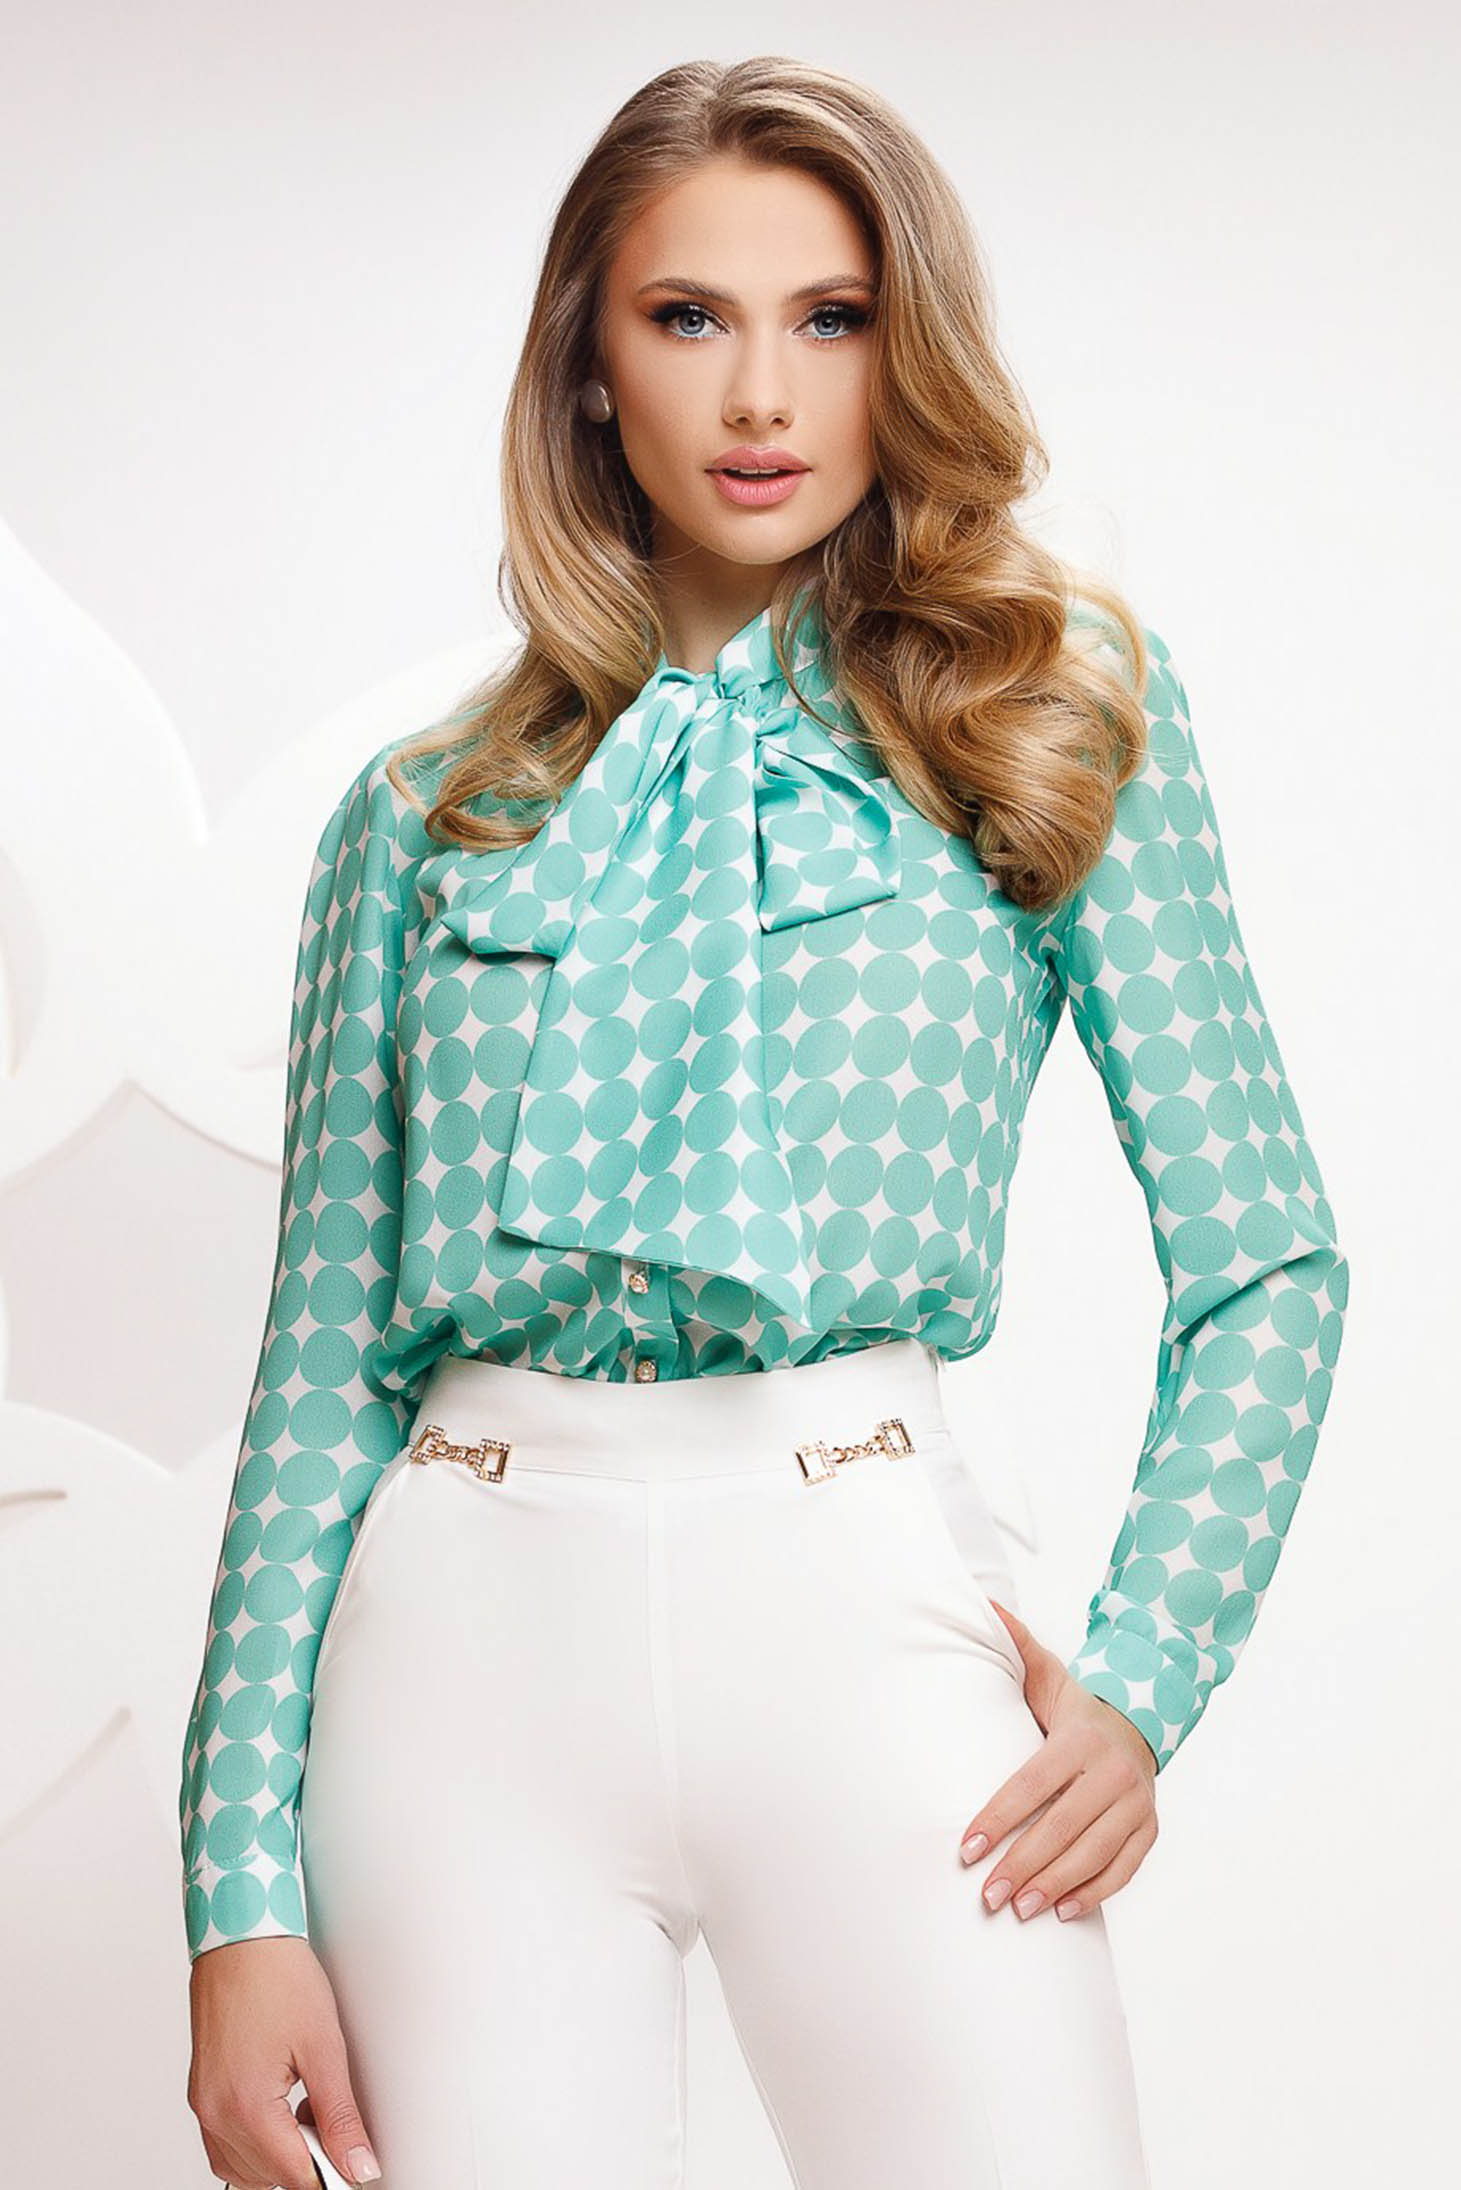 Green women`s blouse dots print from veil fabric loose fit tied with bow